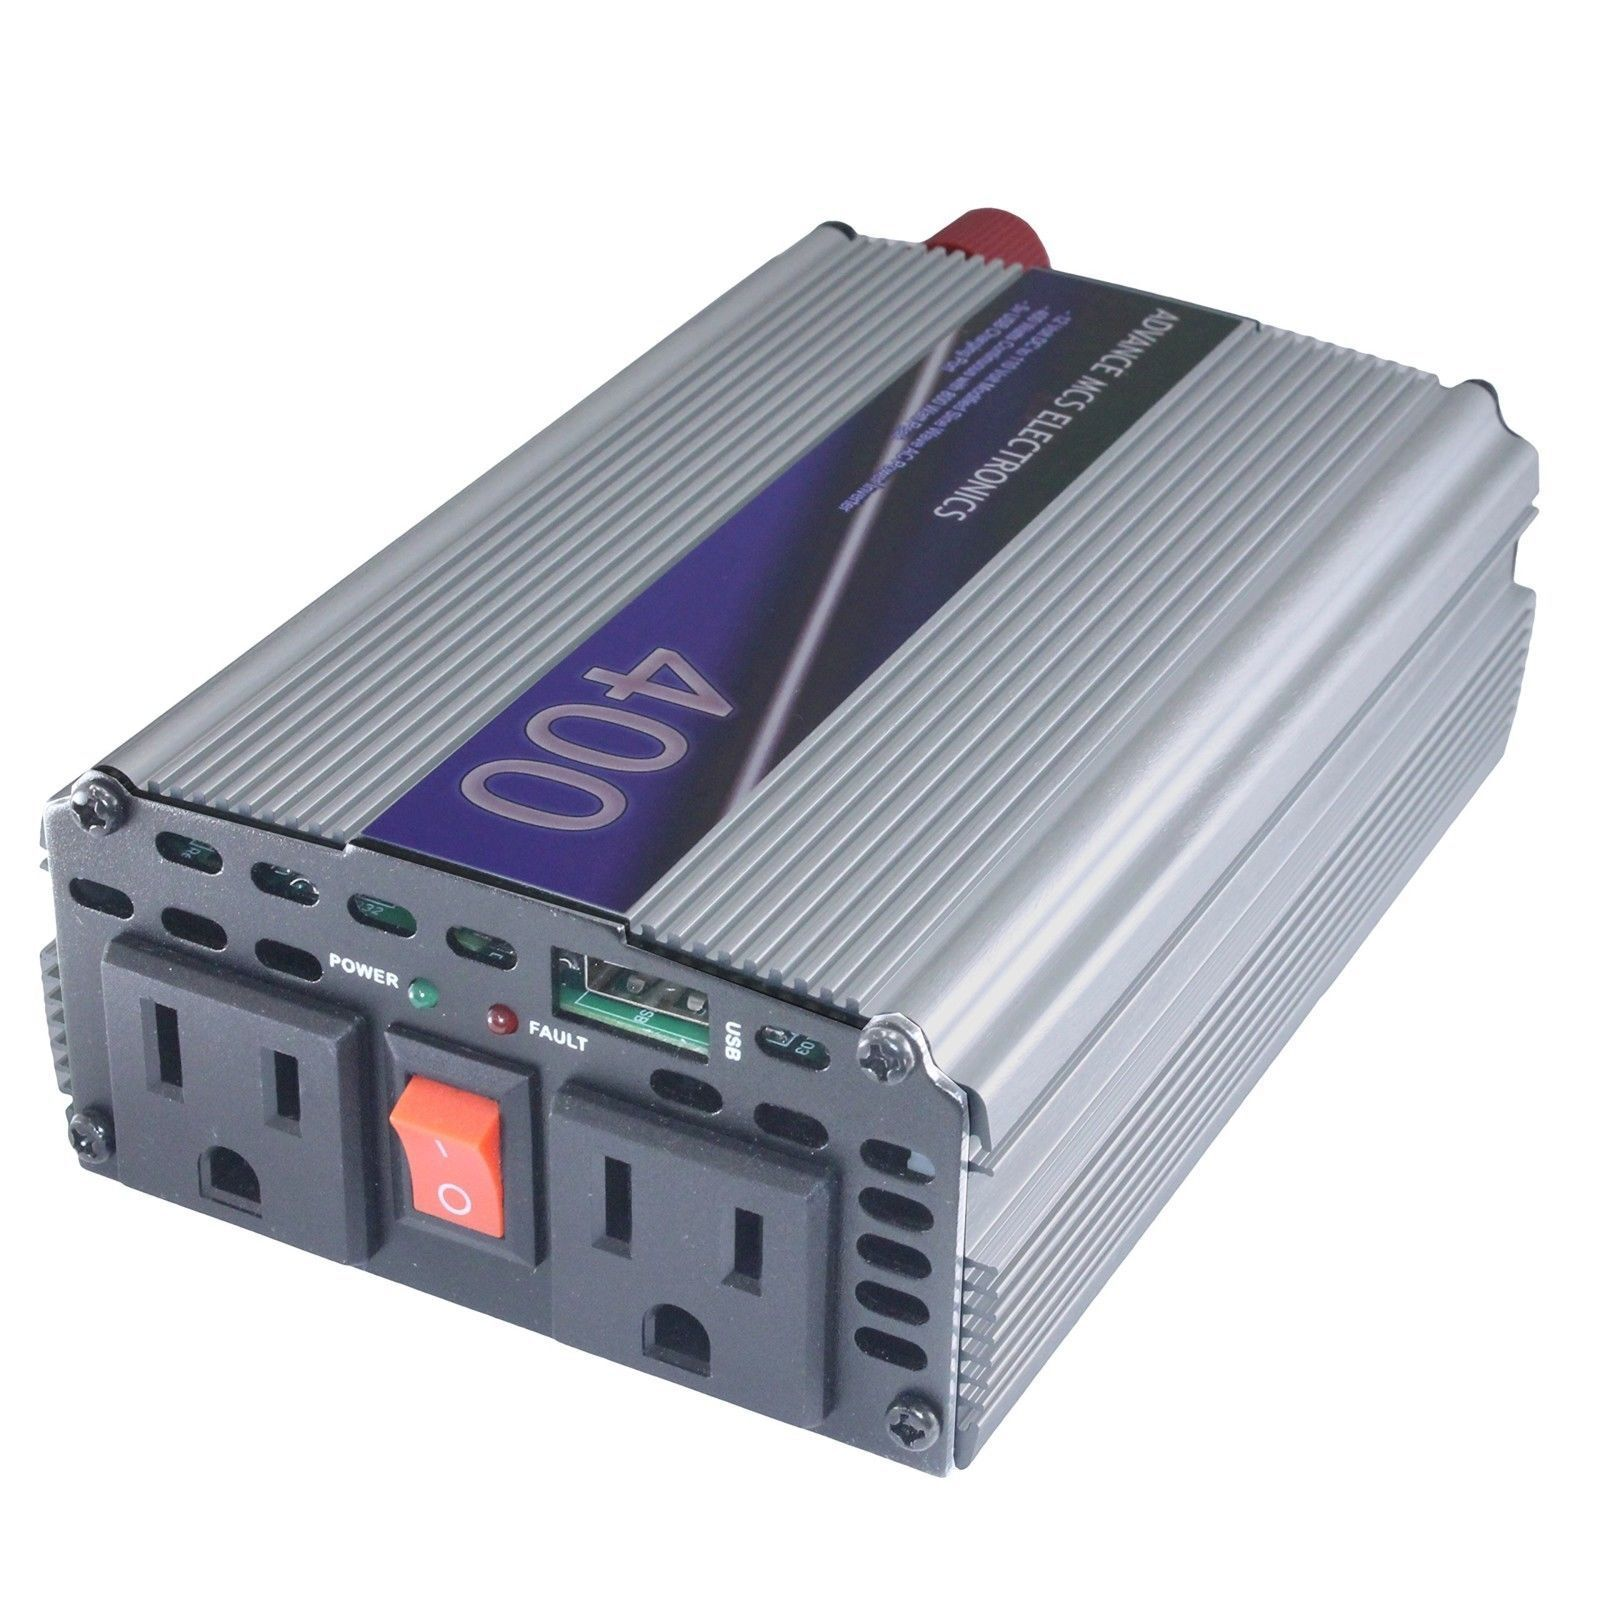 1200w Car Power Inverter Dc 12v To Ac 110v Electronic Charger Simple Low Convert 120v How Much Stock Photo